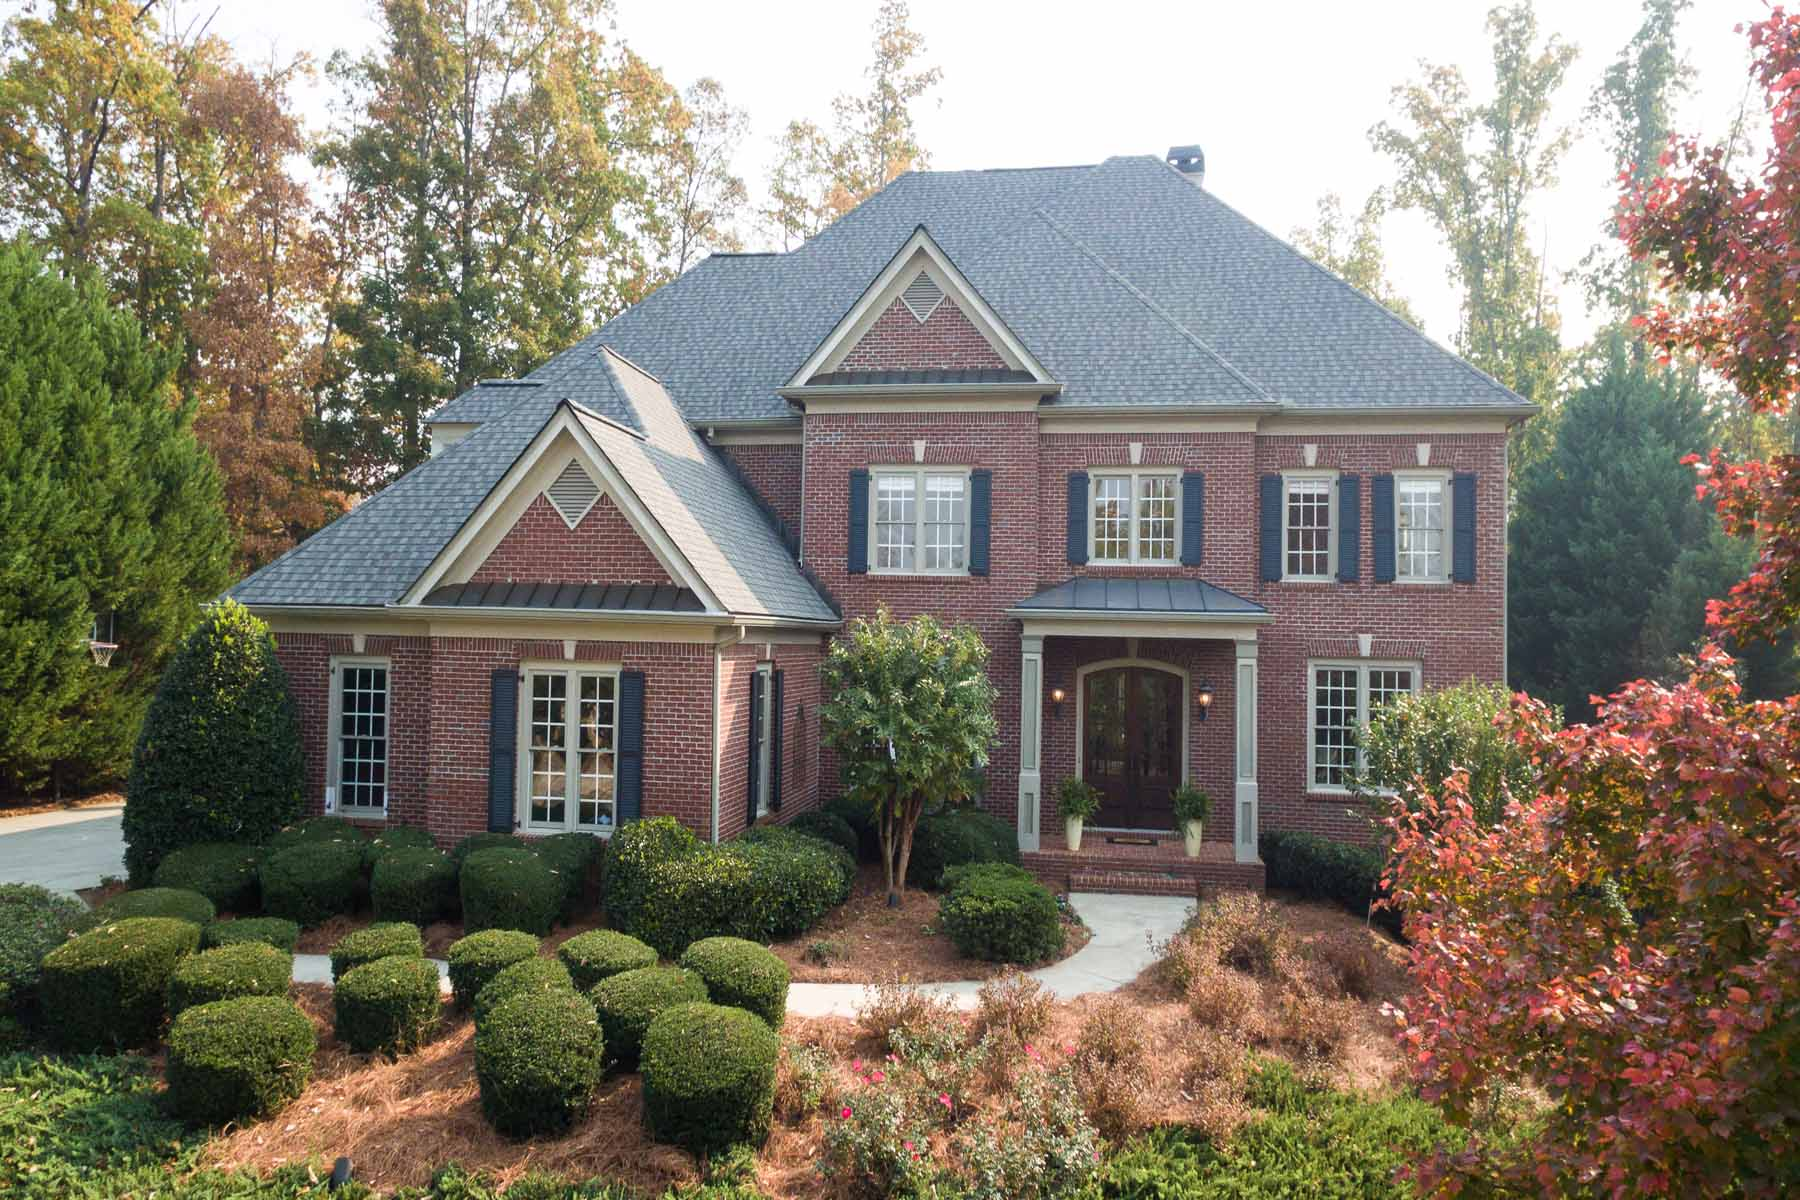 단독 가정 주택 용 매매 에 Extraordinary Home In Jack Nicklaus Designed Golf Community 7285 Laurel Oak Drive Suwanee, 조지아, 30024 미국